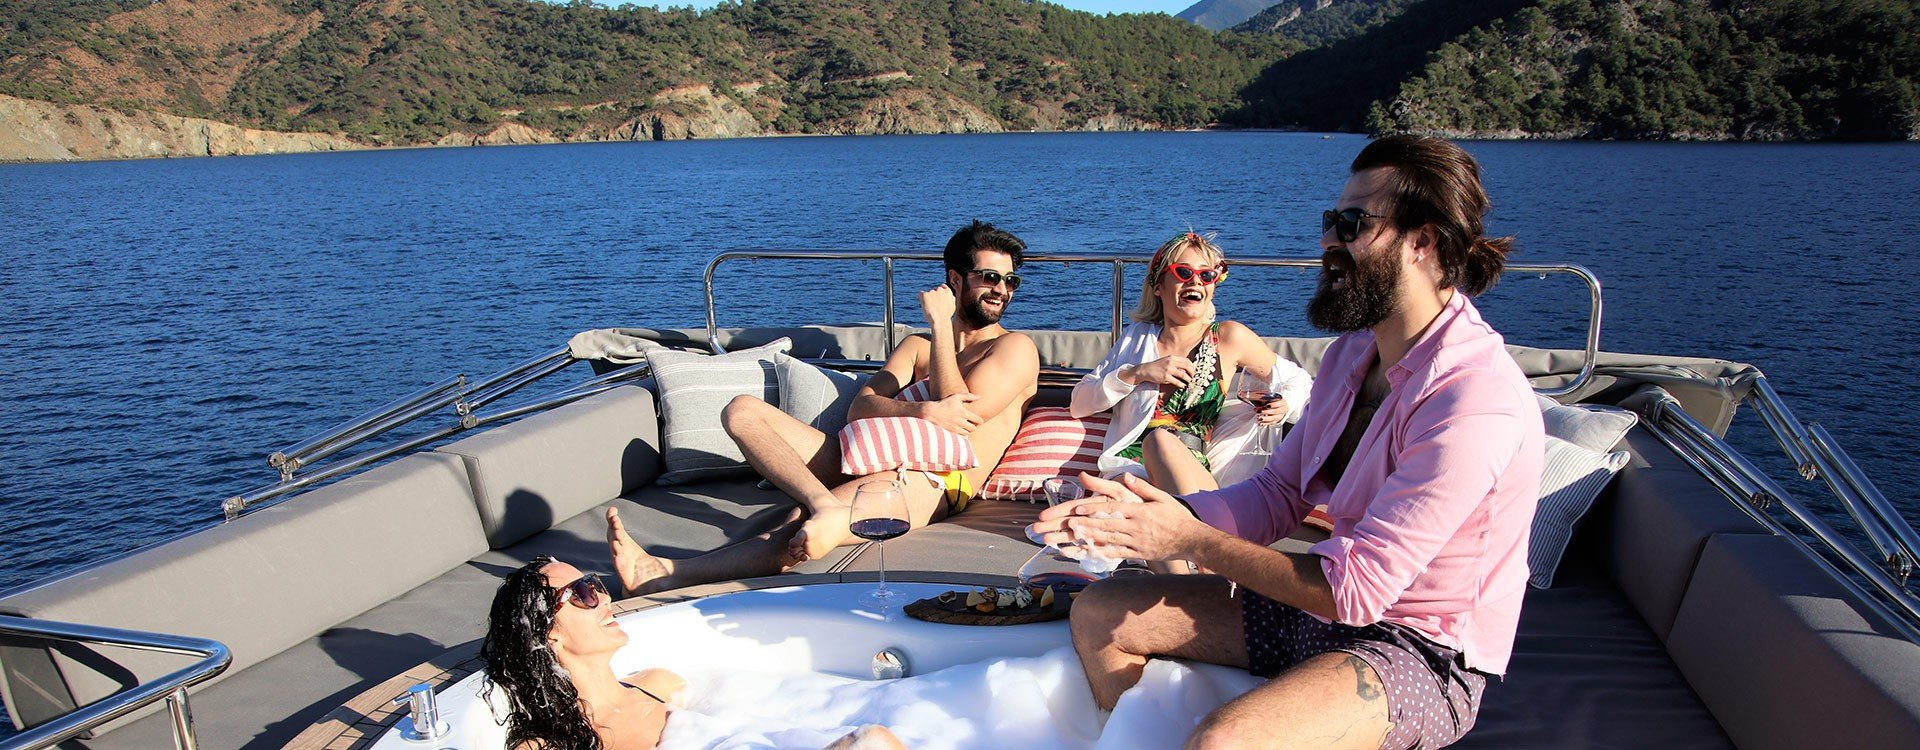 Life on Yachts | Gulet Charter Turkey, Greek Islands and Croatia